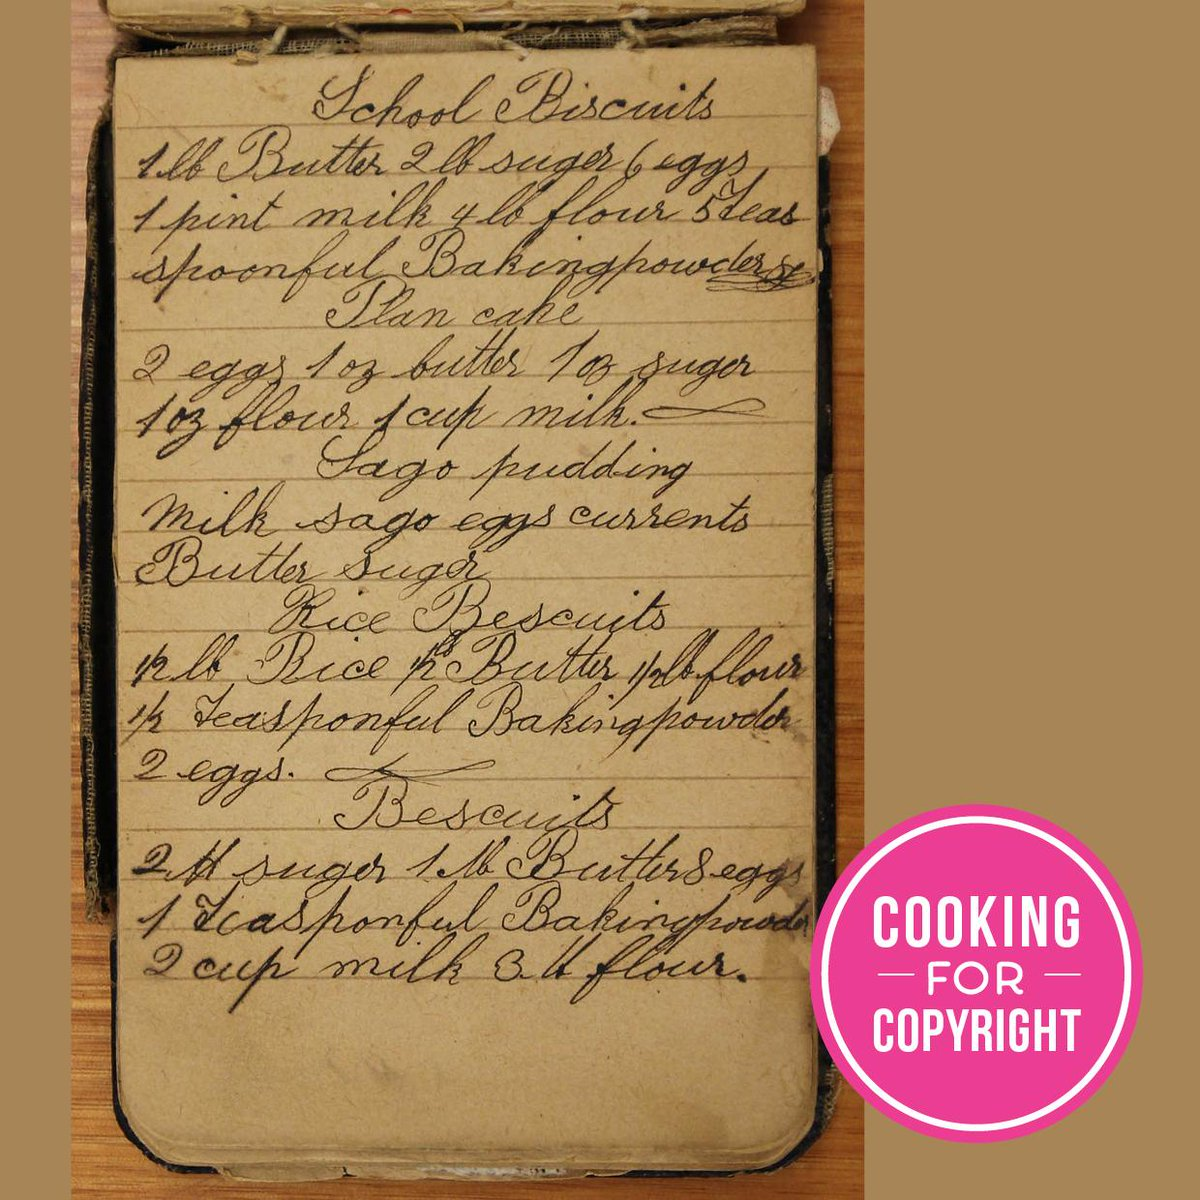 Are your kids back at school?  How about making them some traditional Aussie school biscuits #cookingforcopyright http://t.co/Ayagq6Lh8e